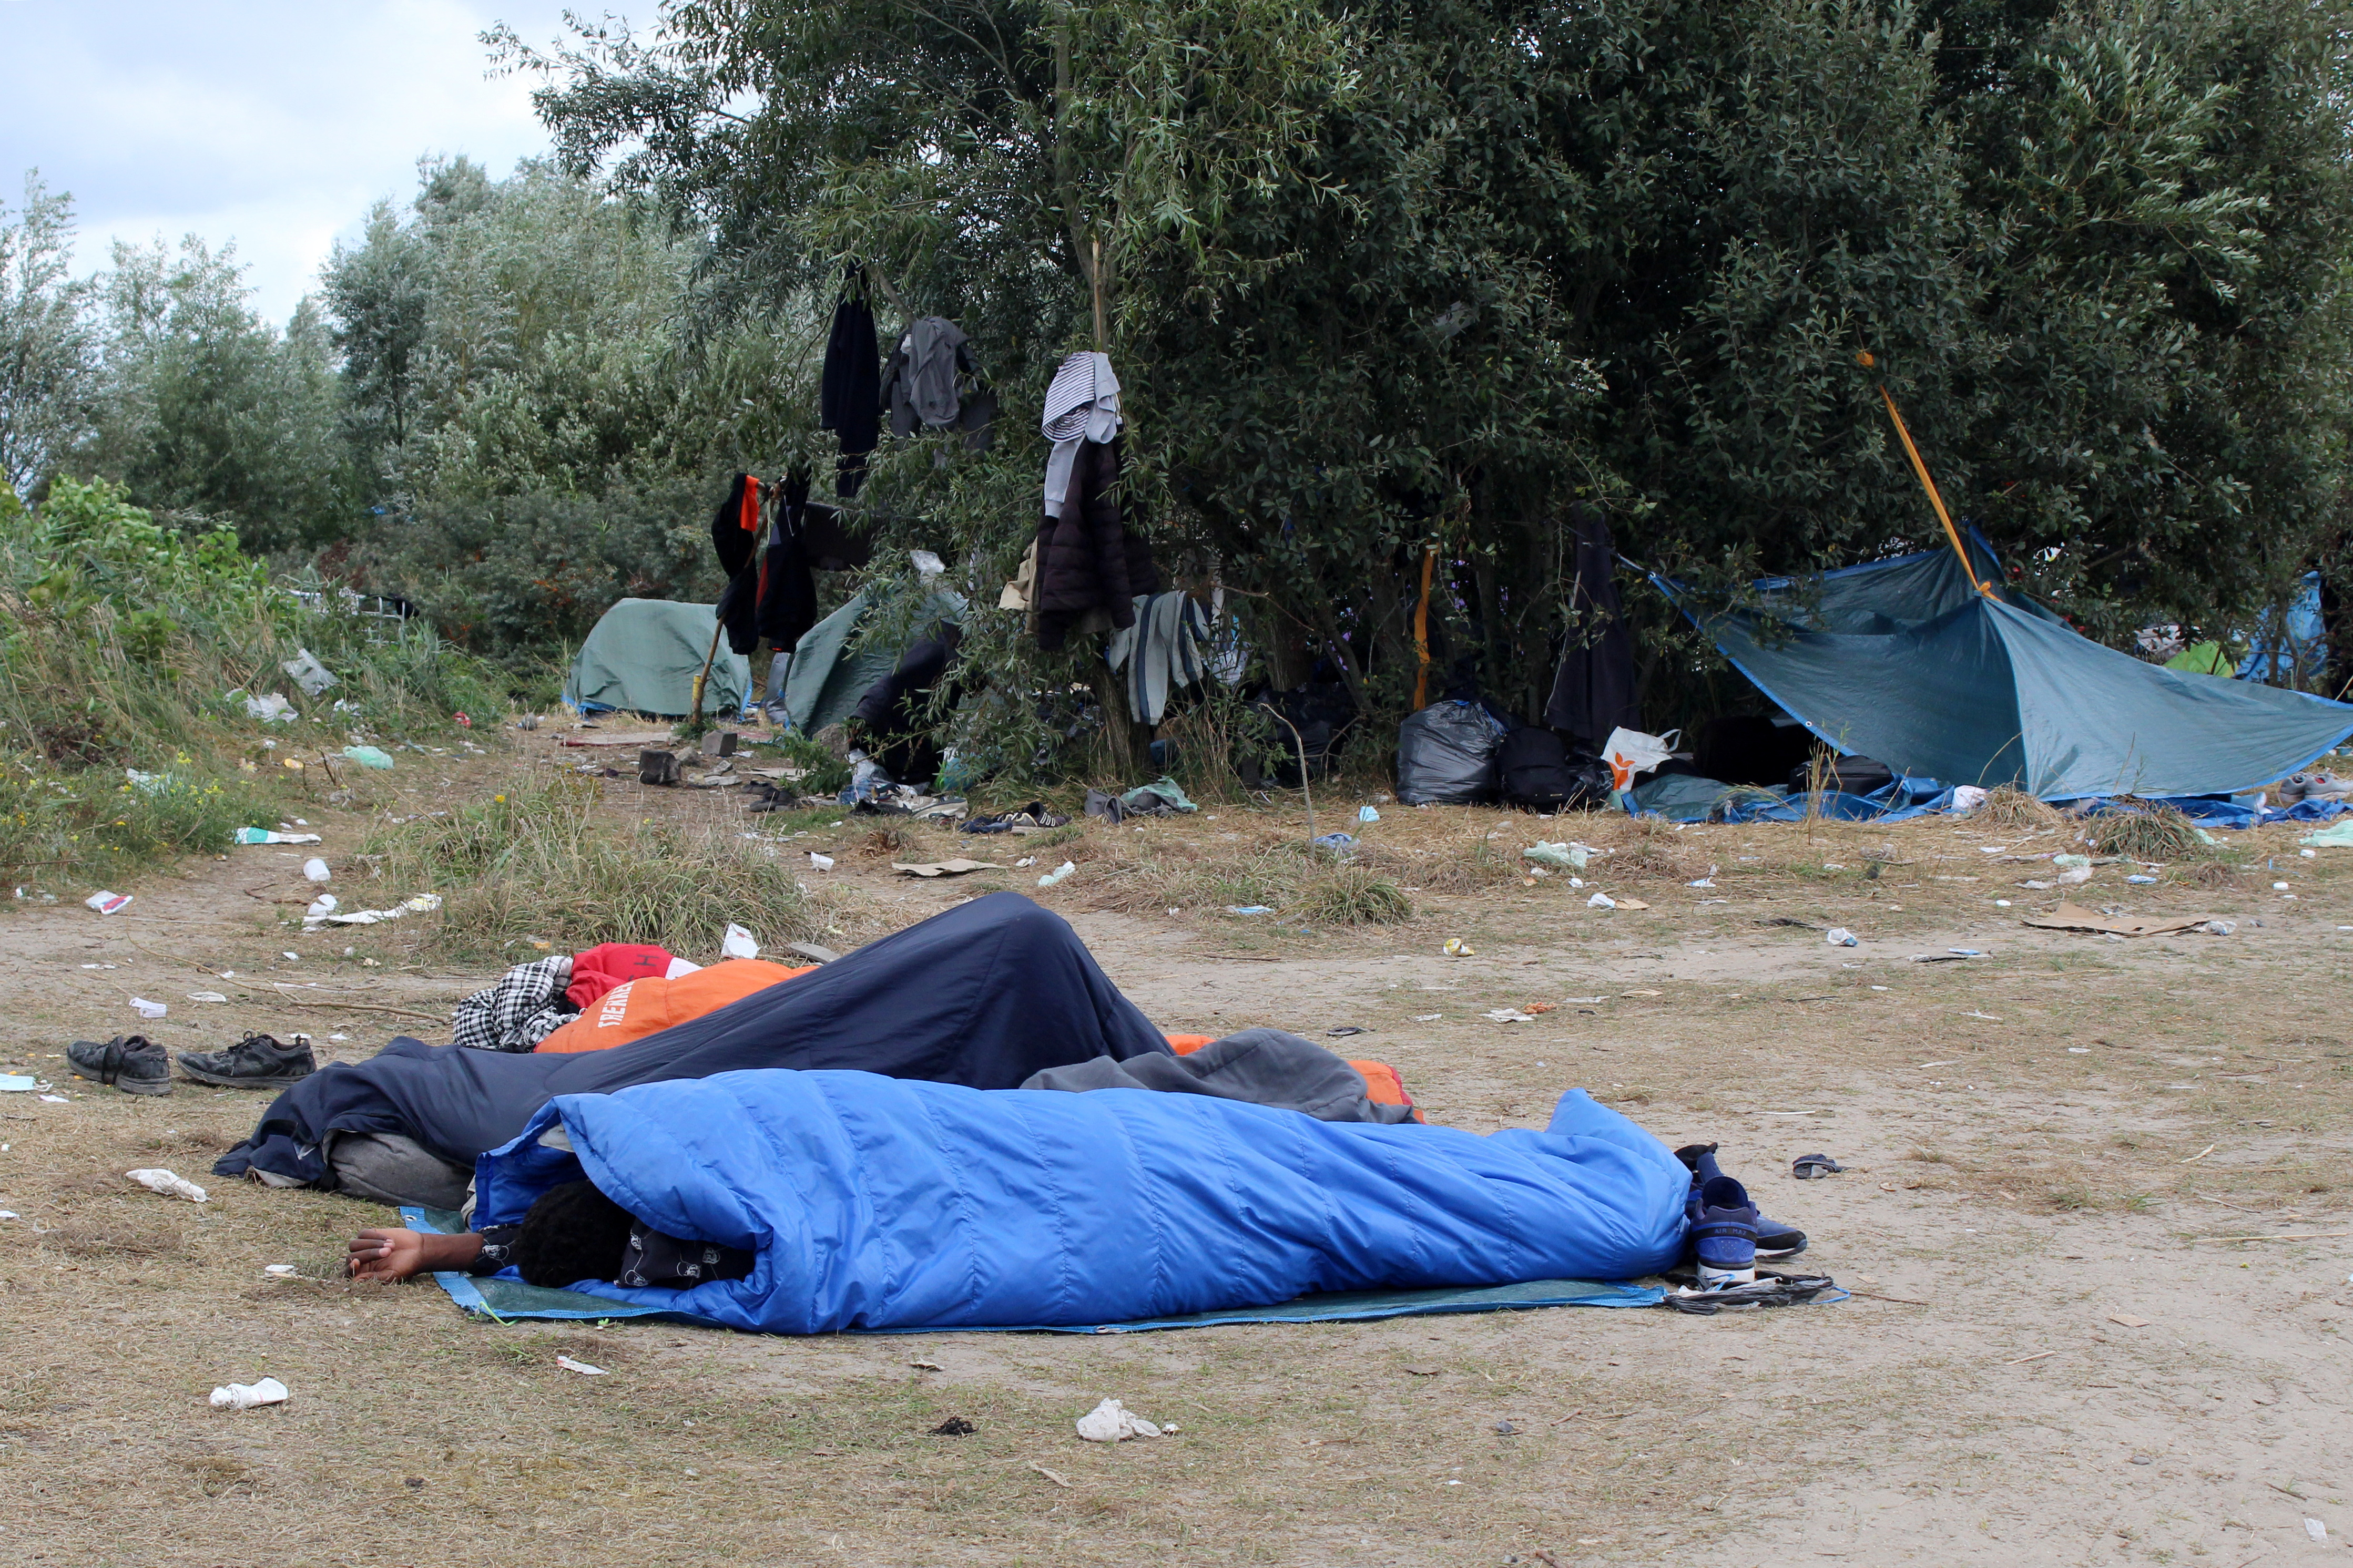 Migrants sleep in sleeping bags at a makeshift migrant camp near the hospital in Calais, France, September 10, 2021. REUTERS/Forrest Crellin